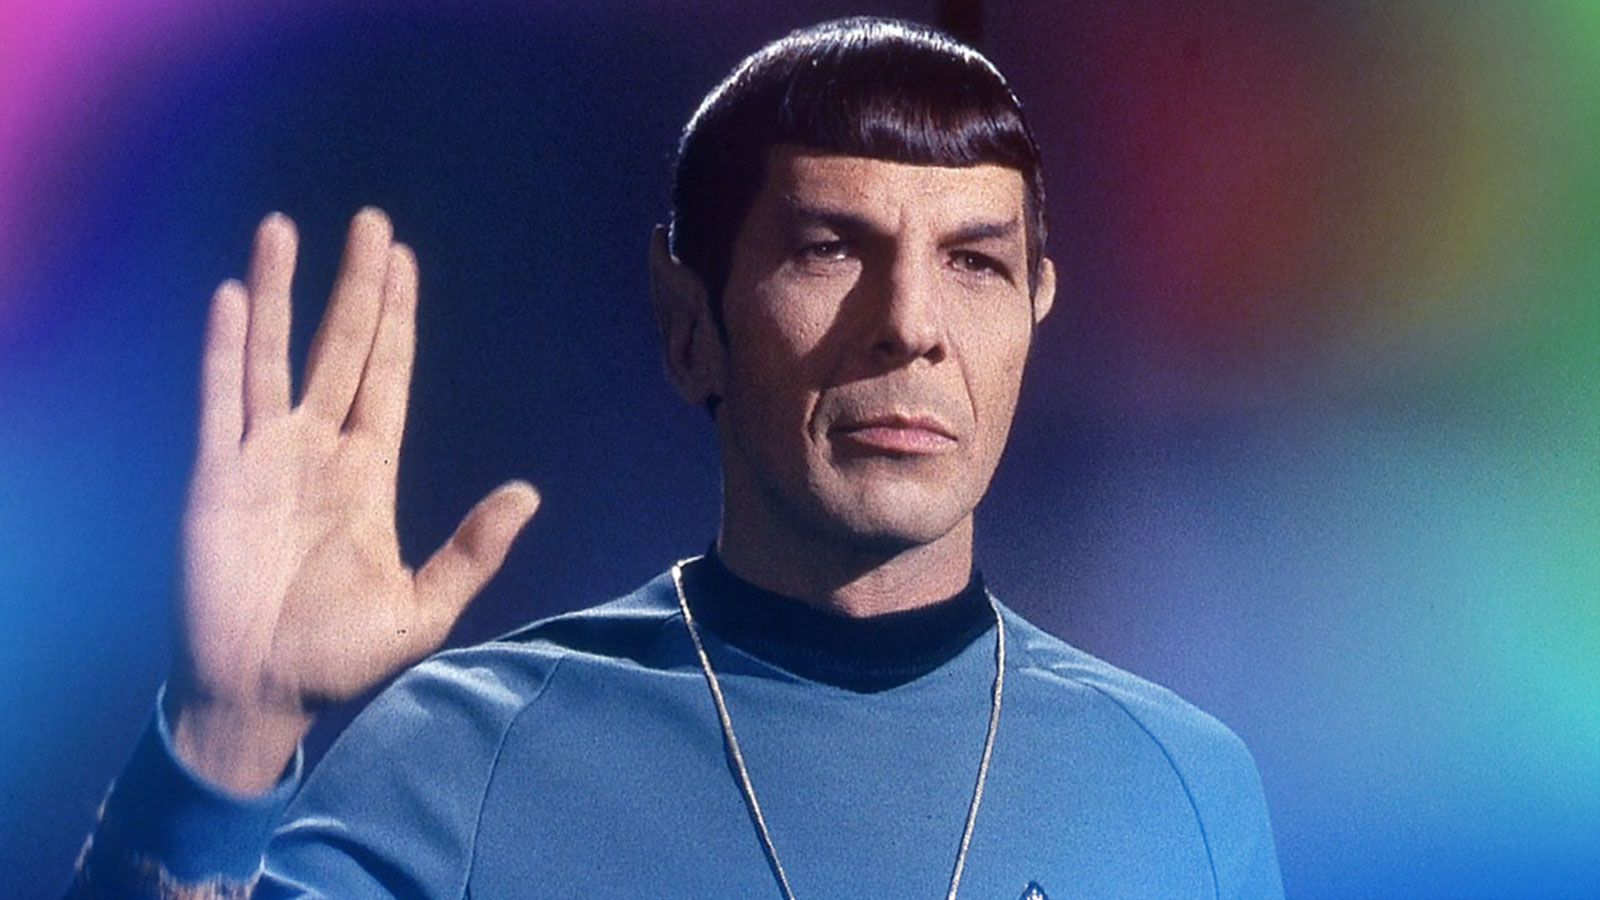 City Of Boston Designates March 26th As 'Leonard Nimoy Day'